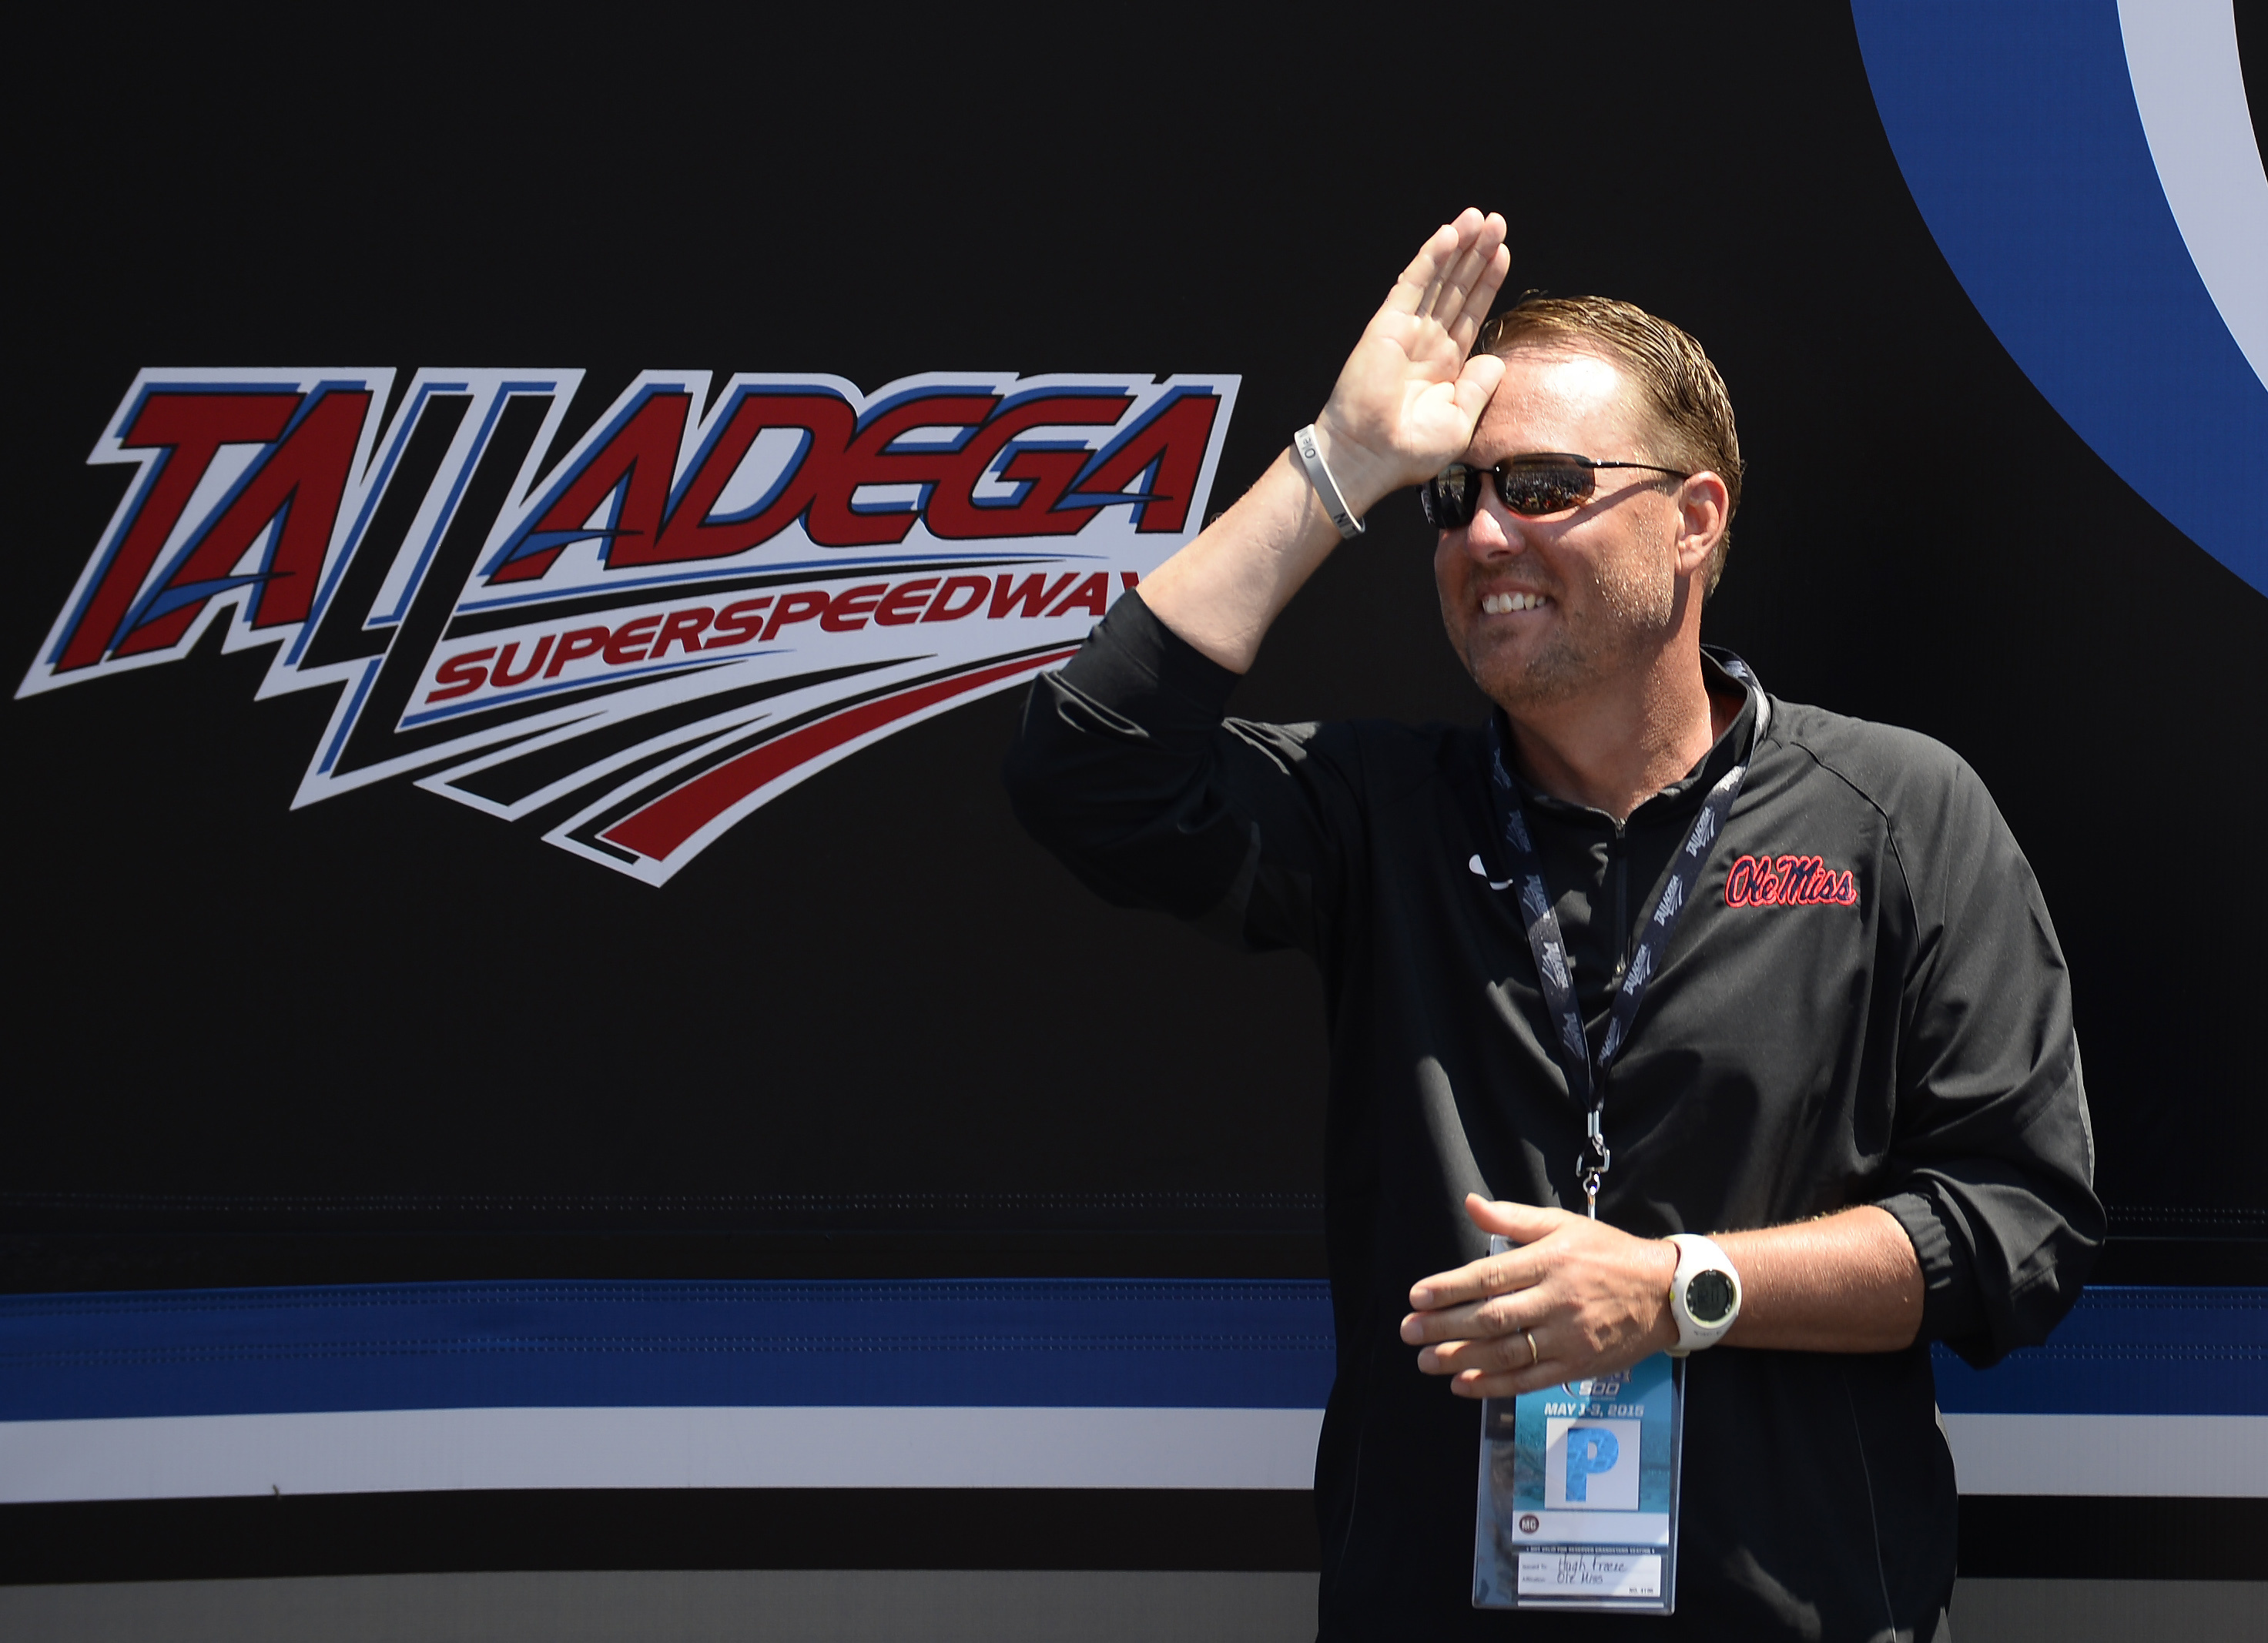 Honorary pace car driver and Mississippi head football coach Hugh Freeze gestures during introductions for the Talladega 500 NASCAR Sprint Cup Series auto race at Talladega Superspeedway, Sunday, May 3, 2015, in Talladega, Ala. (AP Photo/David Tulis)